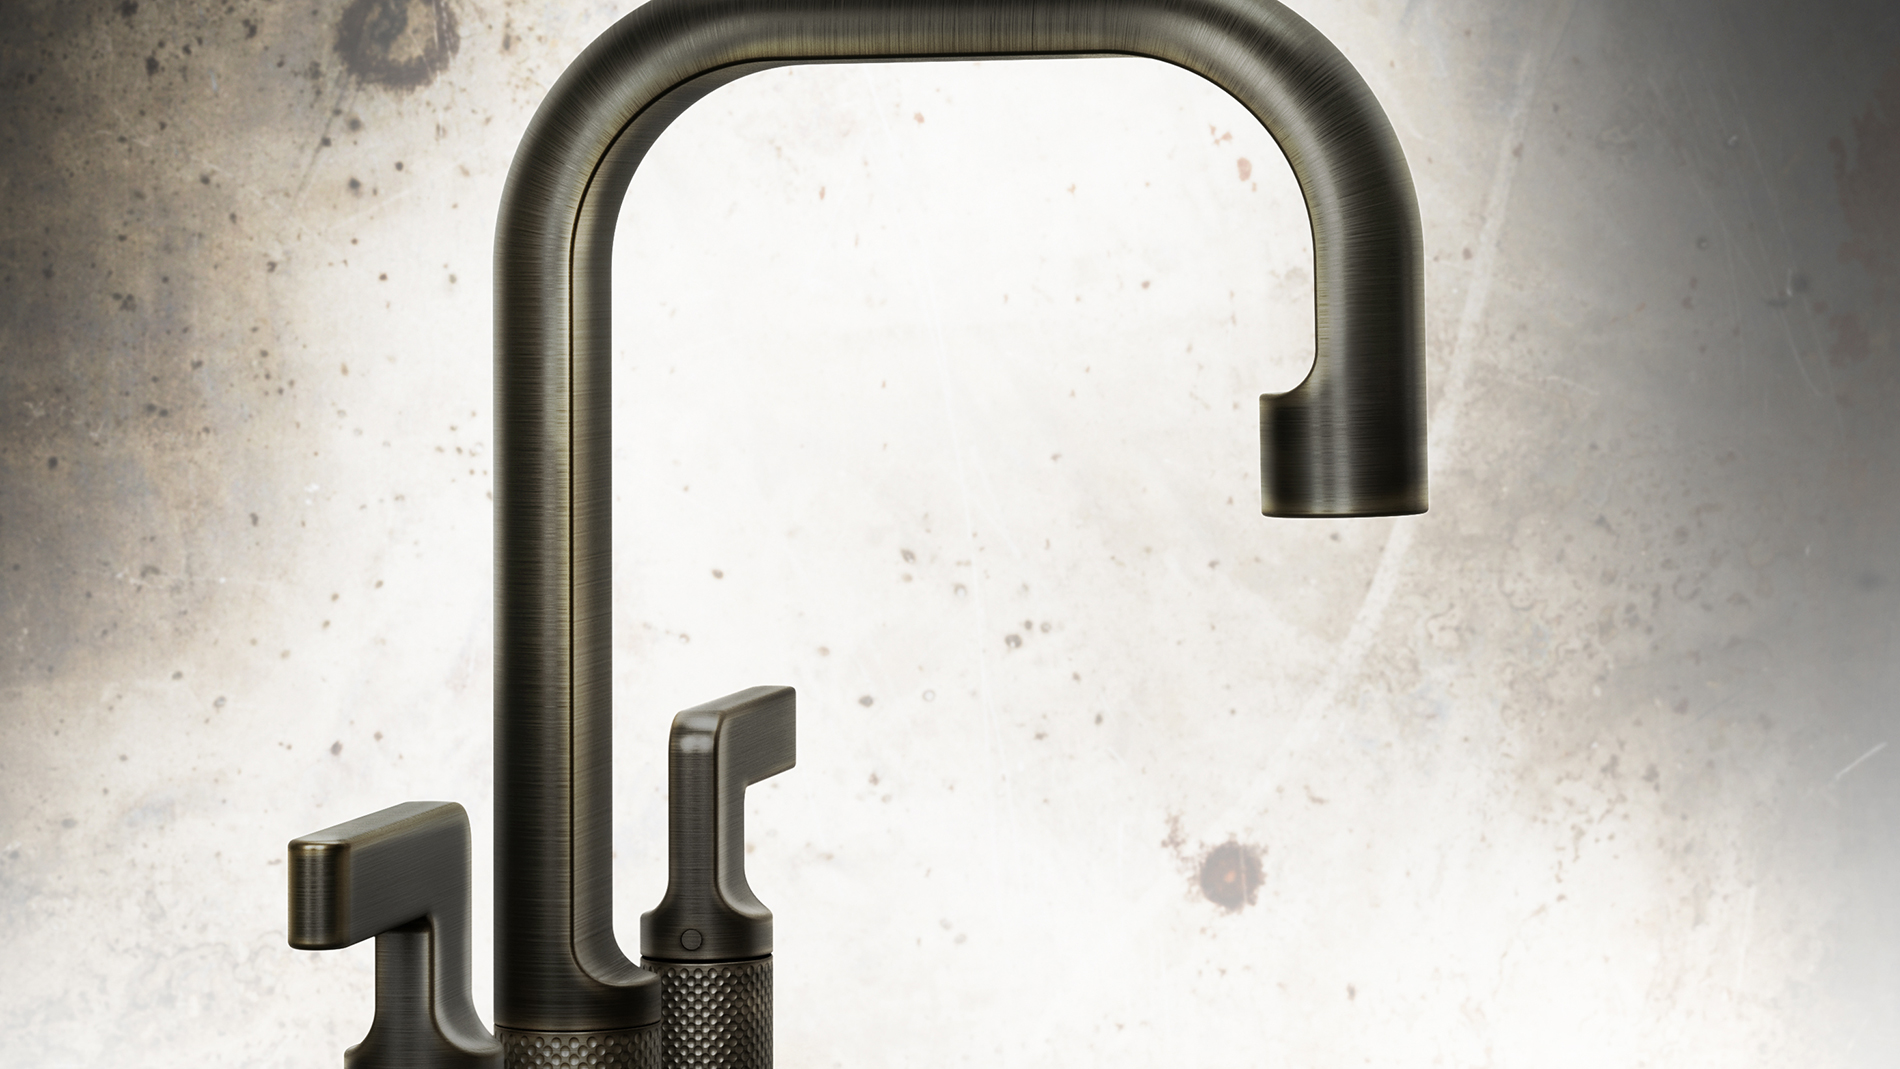 Bathroom faucet GESSI INCISO BY DAVID ROCKWELL